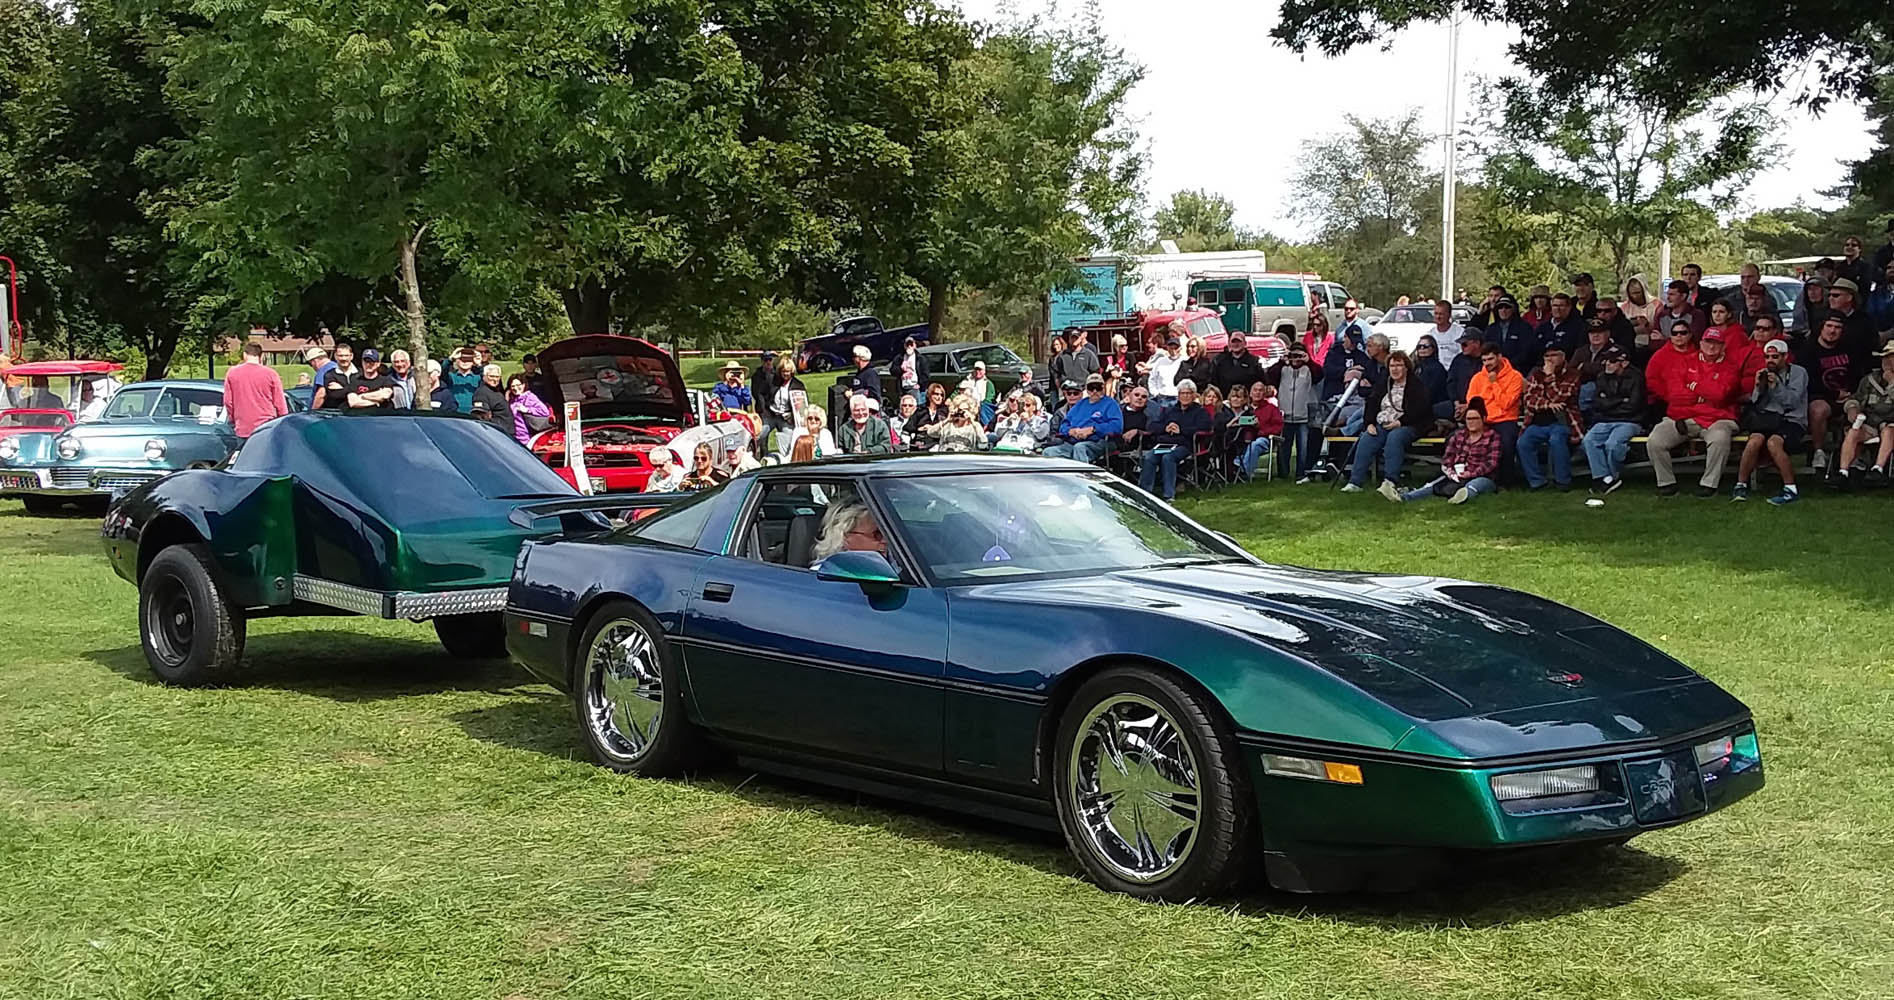 Top 25- 1986 Corvette & Trailer, Hugh White 1